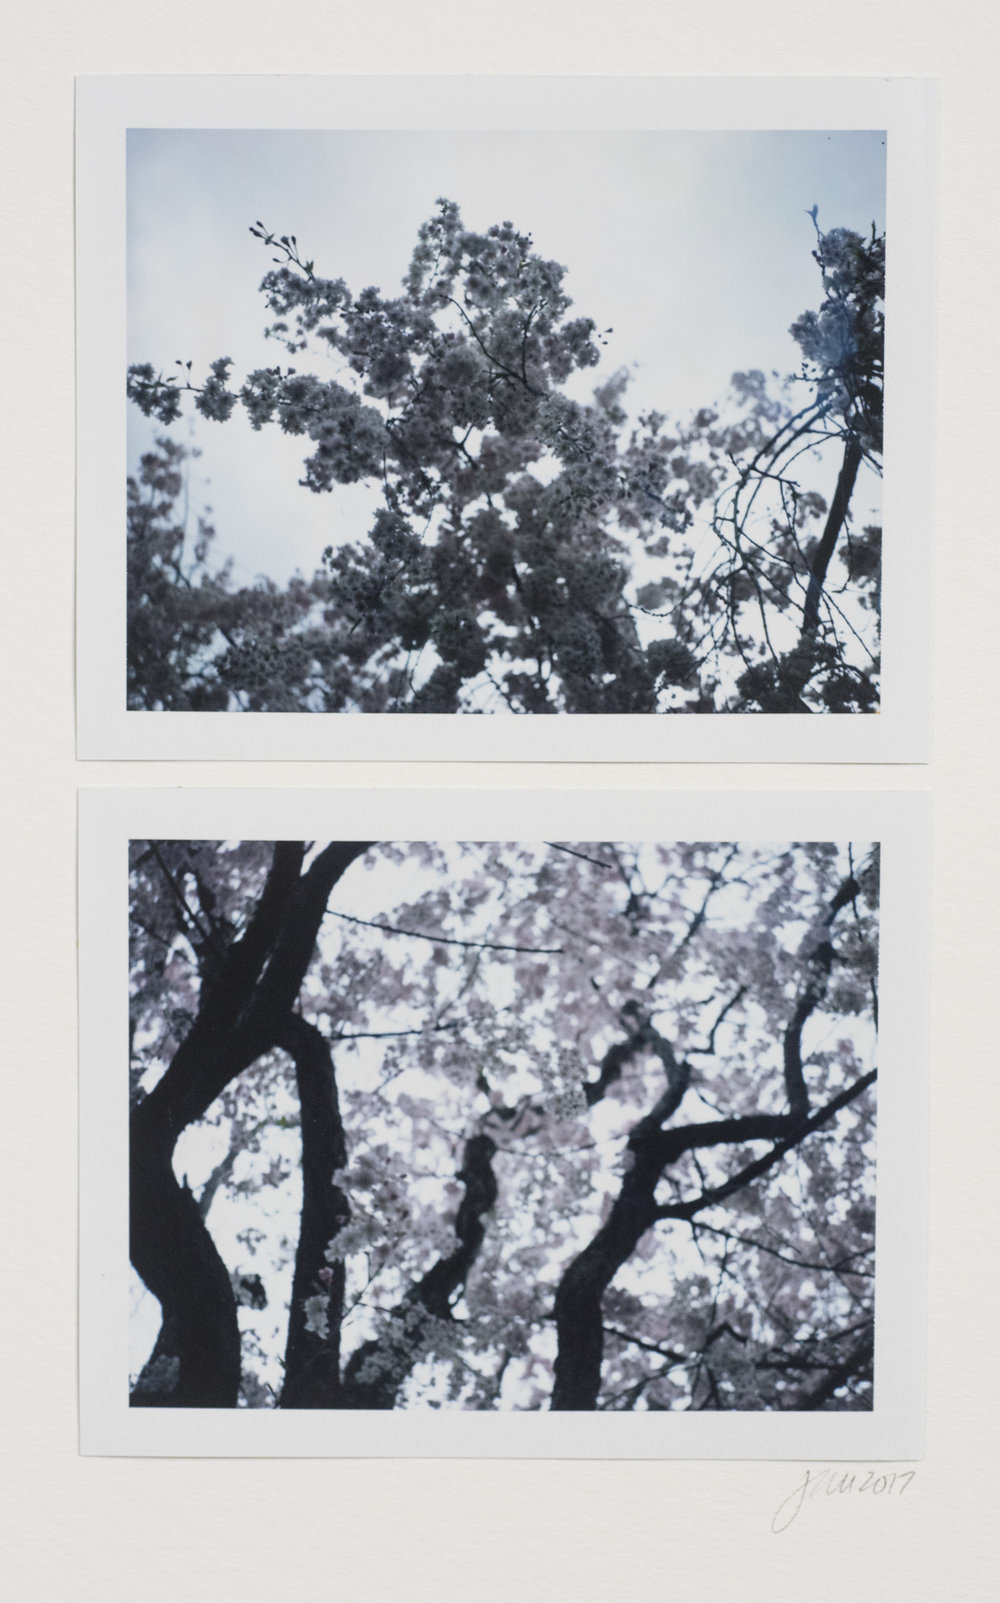 Weeping From Below | Polaroid Land Camera Auto 100 | Diptichon Paper | Jocelyn Mathewes